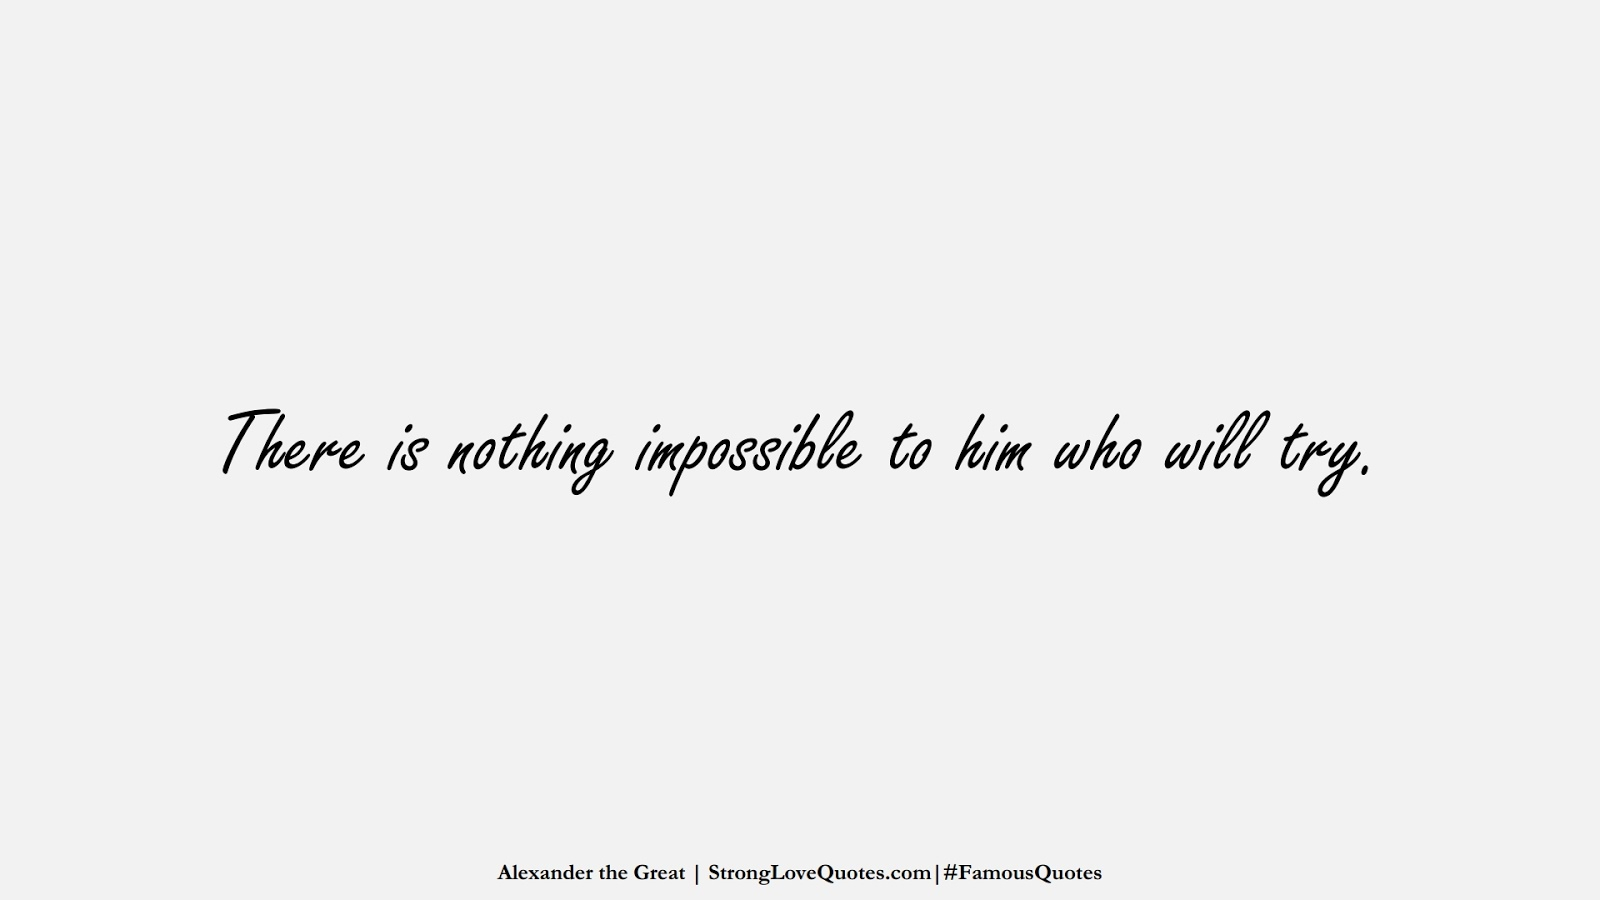 There is nothing impossible to him who will try. (Alexander the Great);  #FamousQuotes